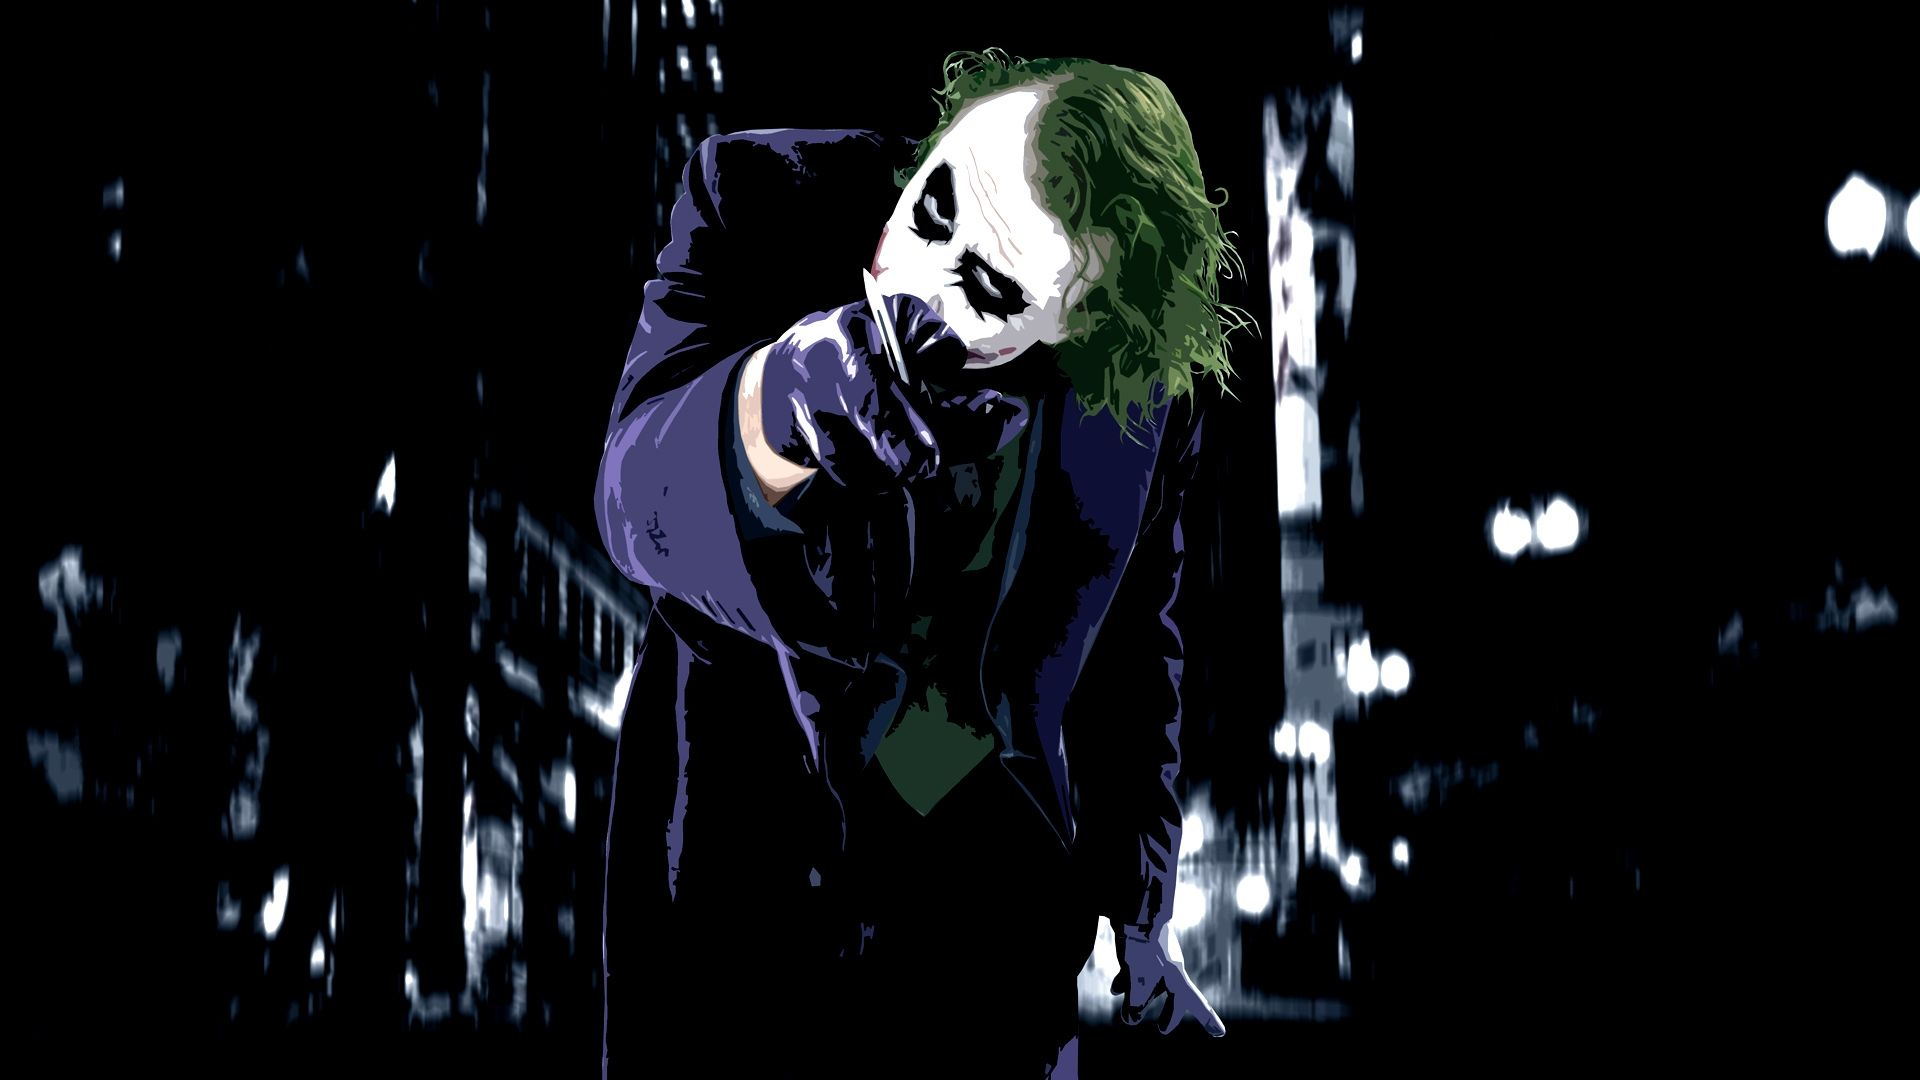 High Definition Joker Wallpaper Hd Quality Photo